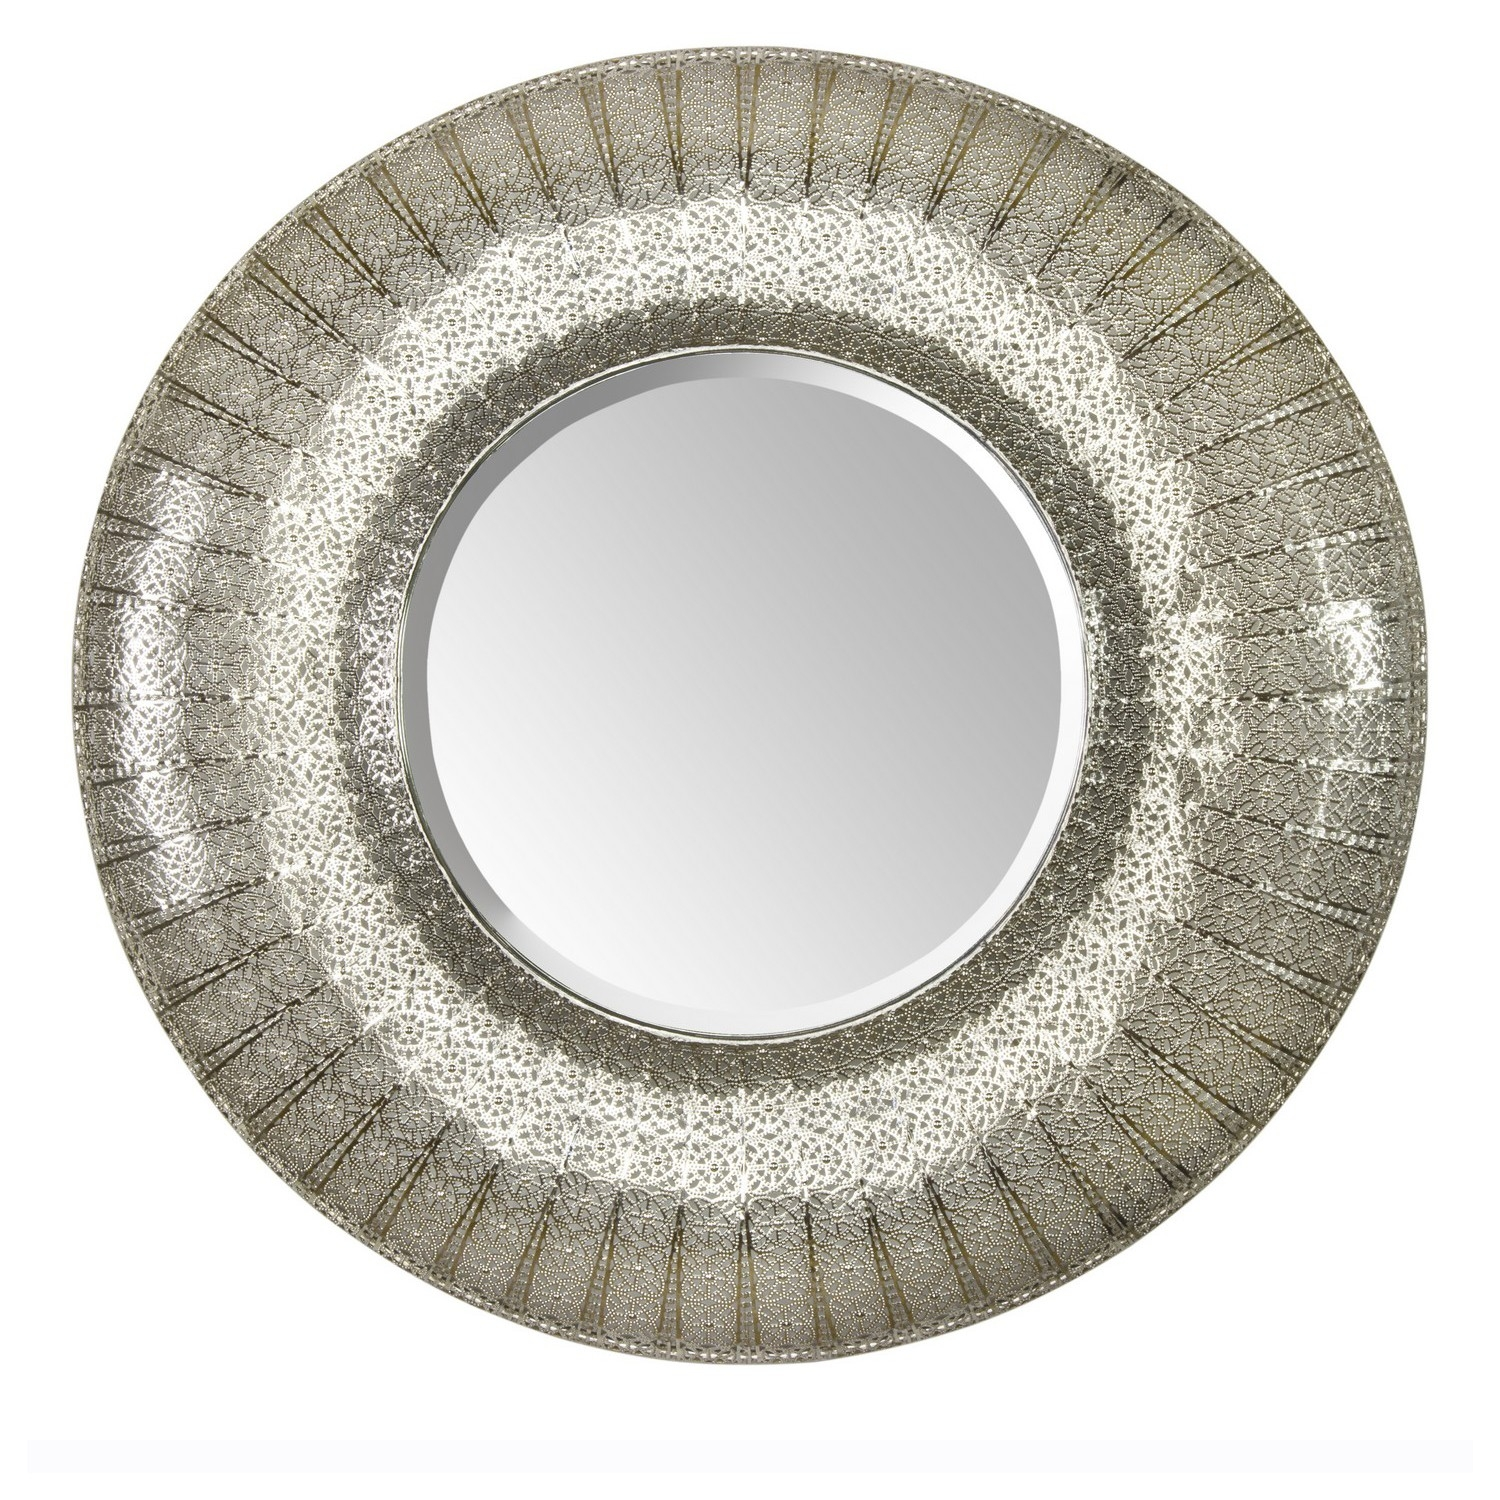 Round Moroccan Mirror The Round One In Silver 5499 Actual Intended For Contemporary Round Mirror (View 12 of 15)